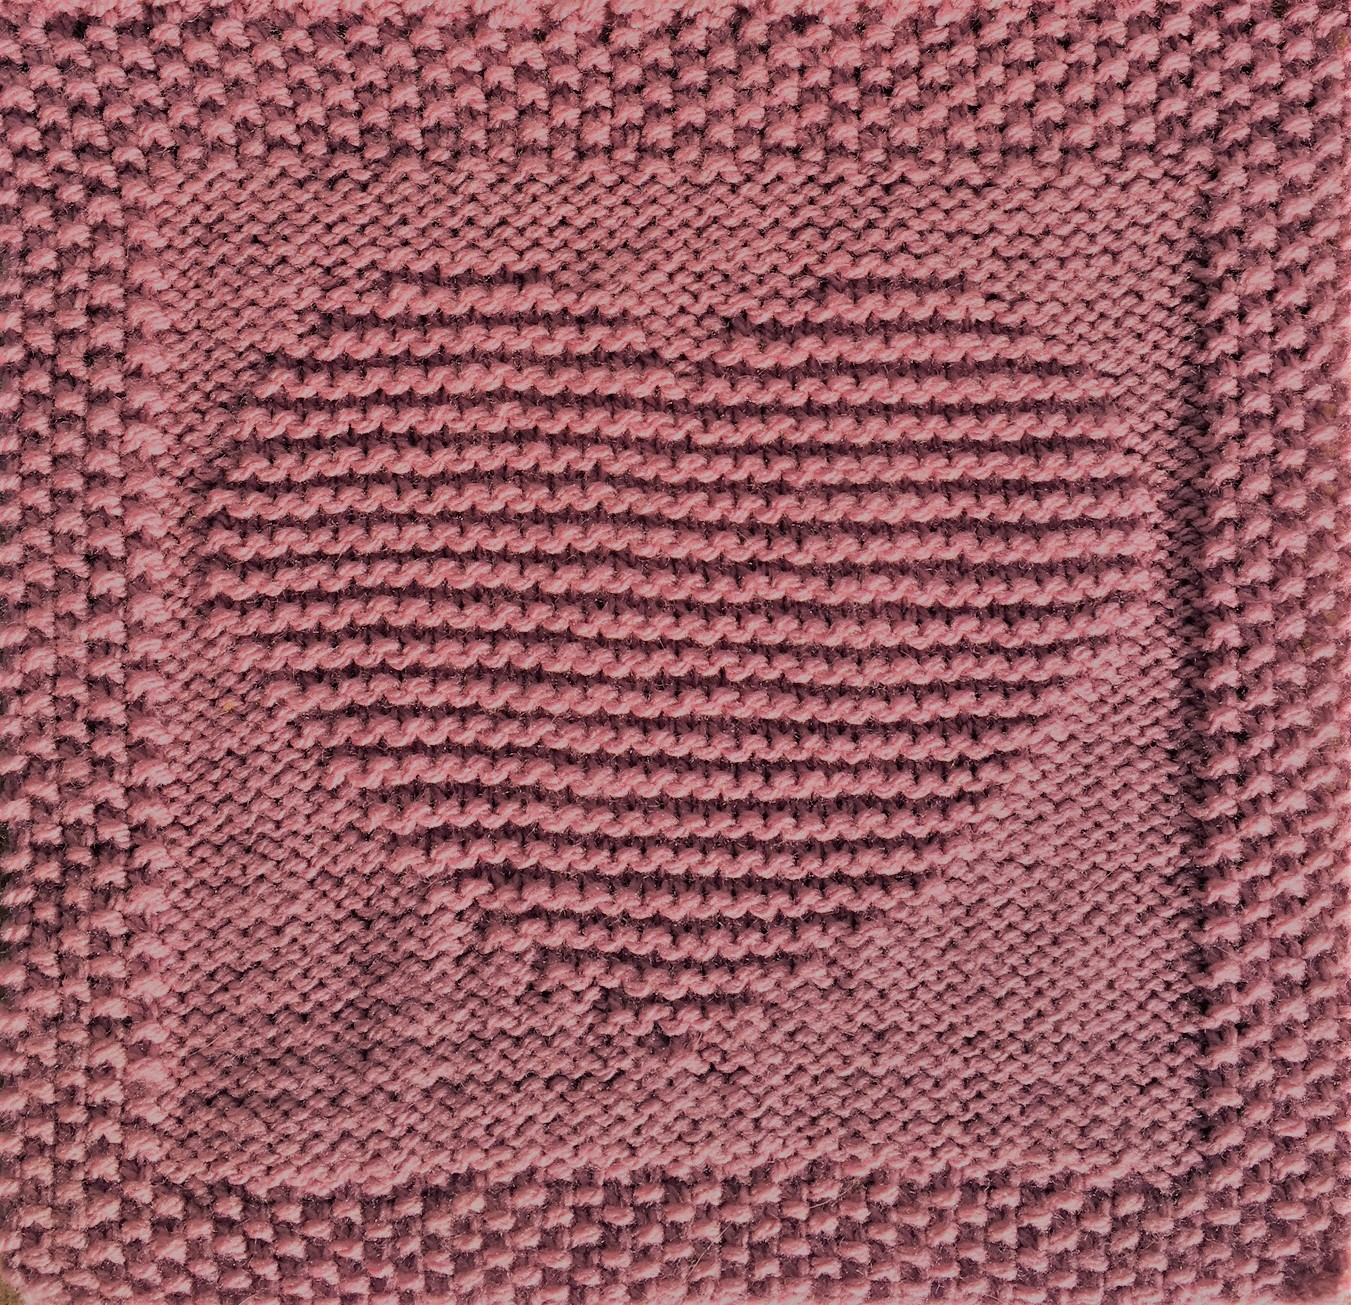 Free Knitting Pattern Heart Dishcloth or Afghan Square ...